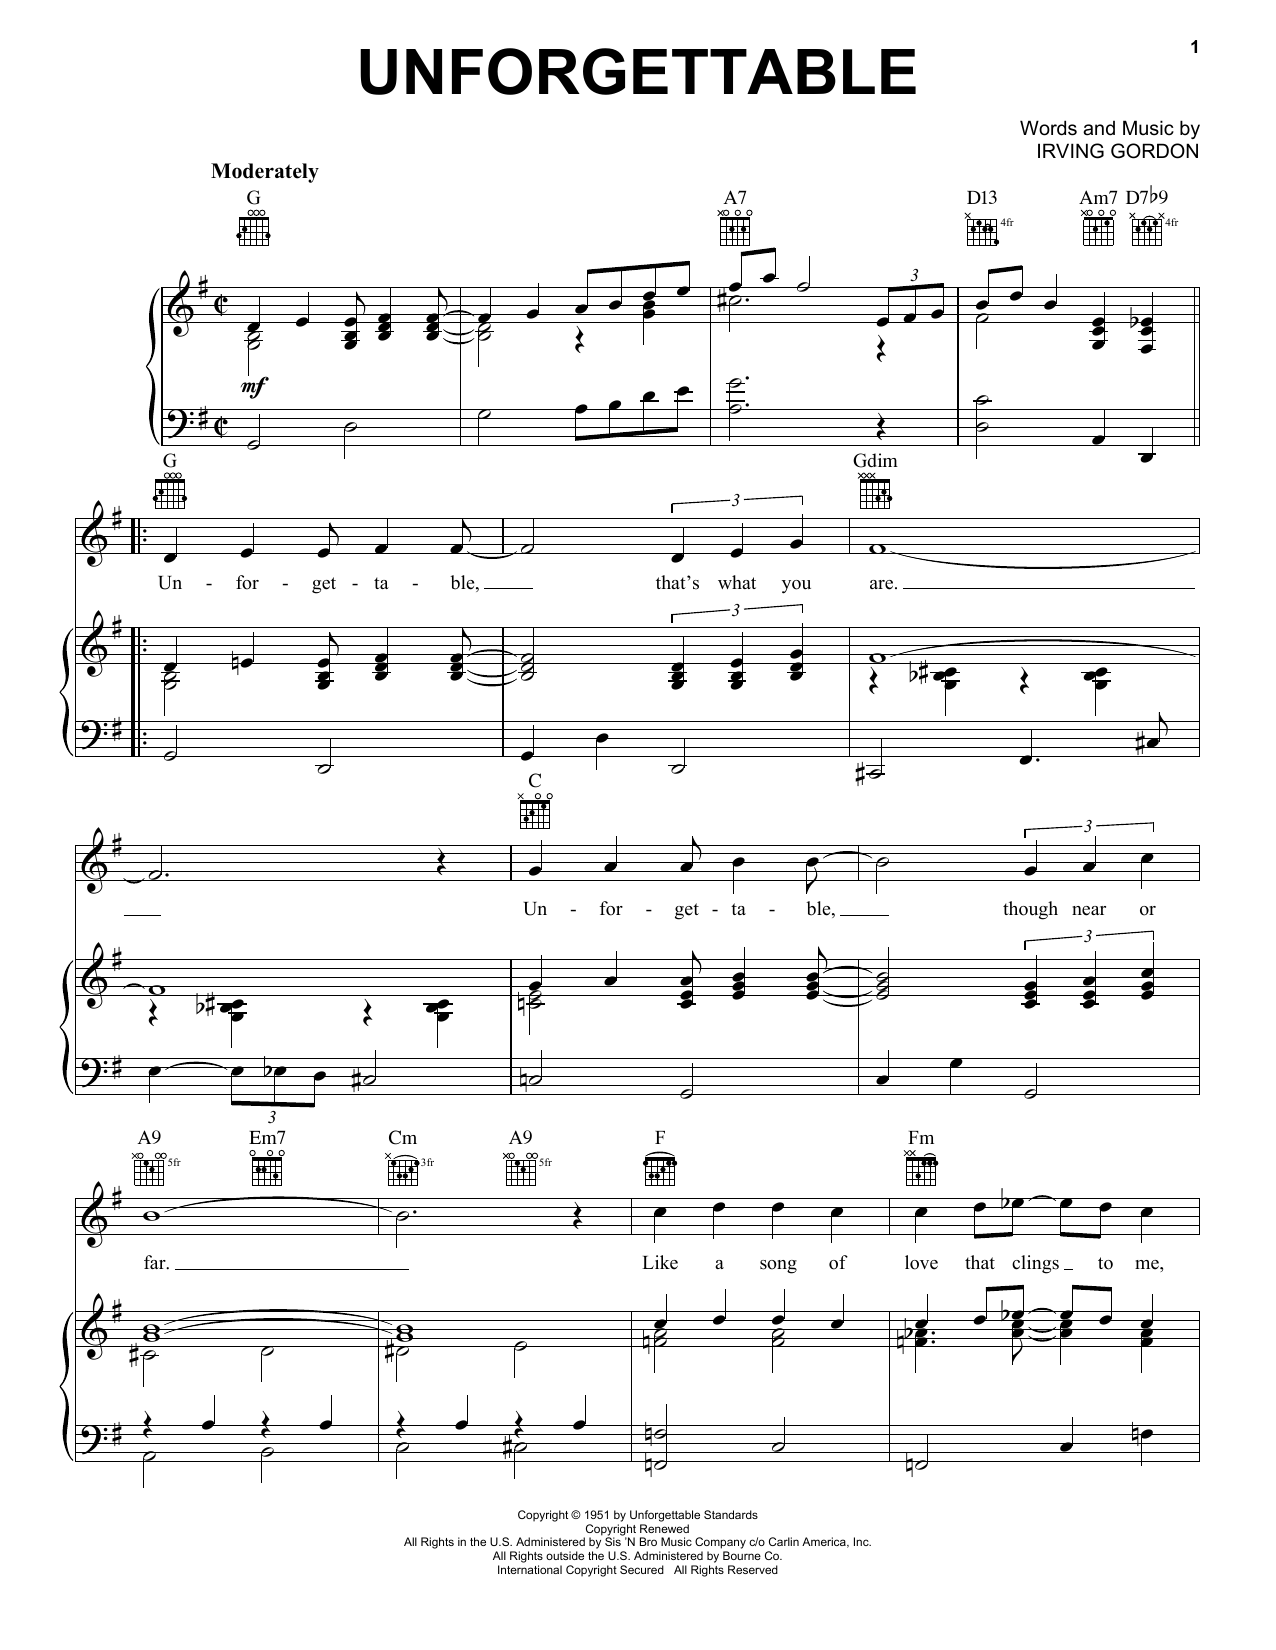 Nat King Cole Unforgettable sheet music notes and chords. Download Printable PDF.